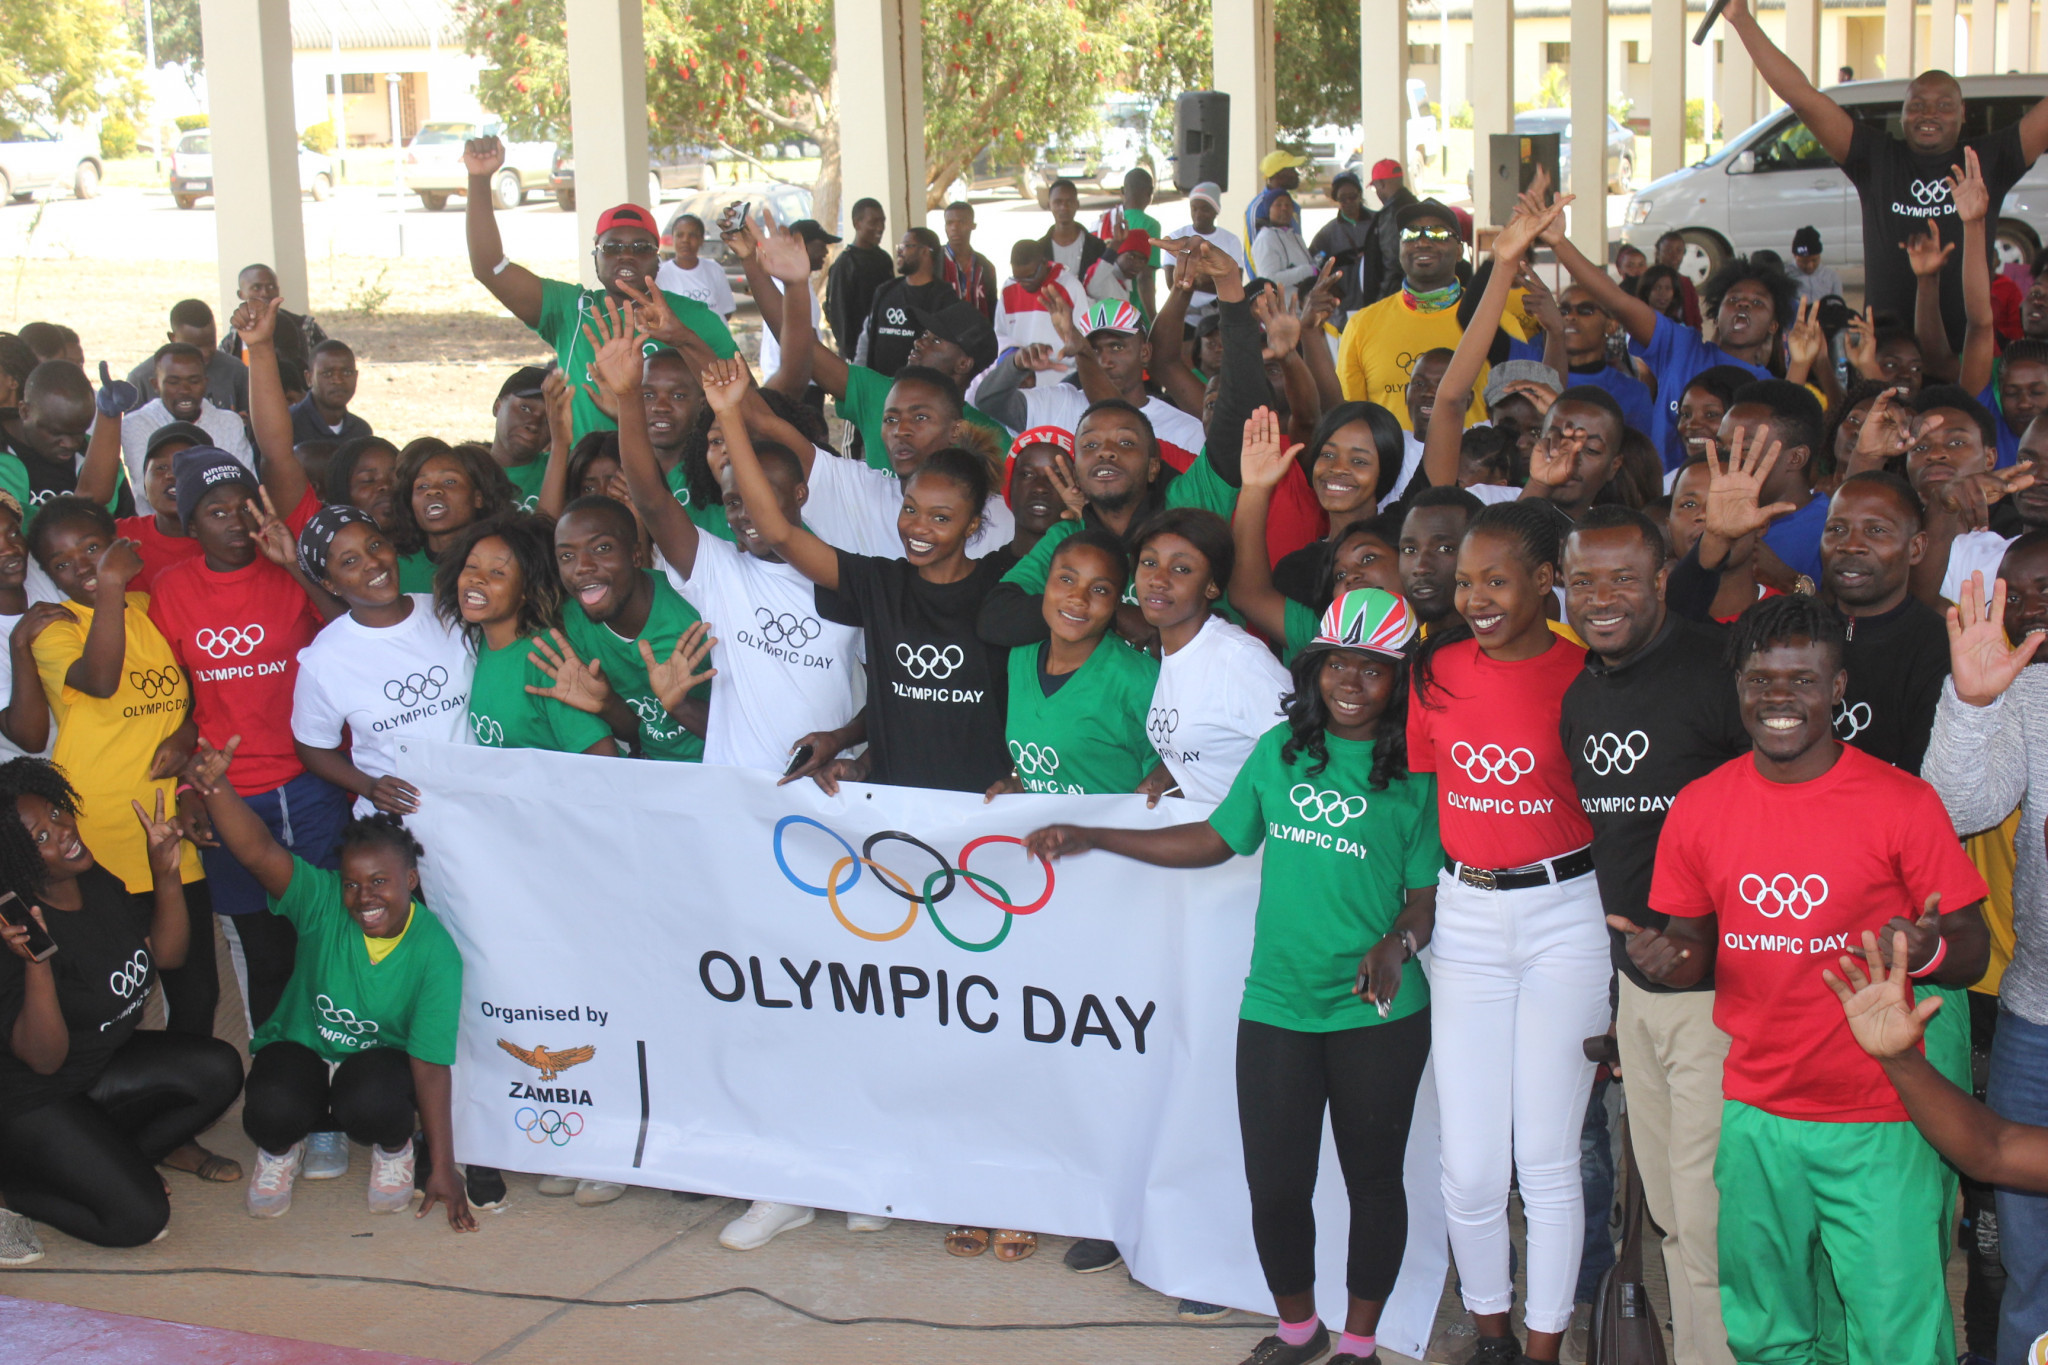 Activities in Kabwe in Central Province saw hundreds of people take part in an Olympc Day run, aerobics, hockey and judo events ©NCOZ